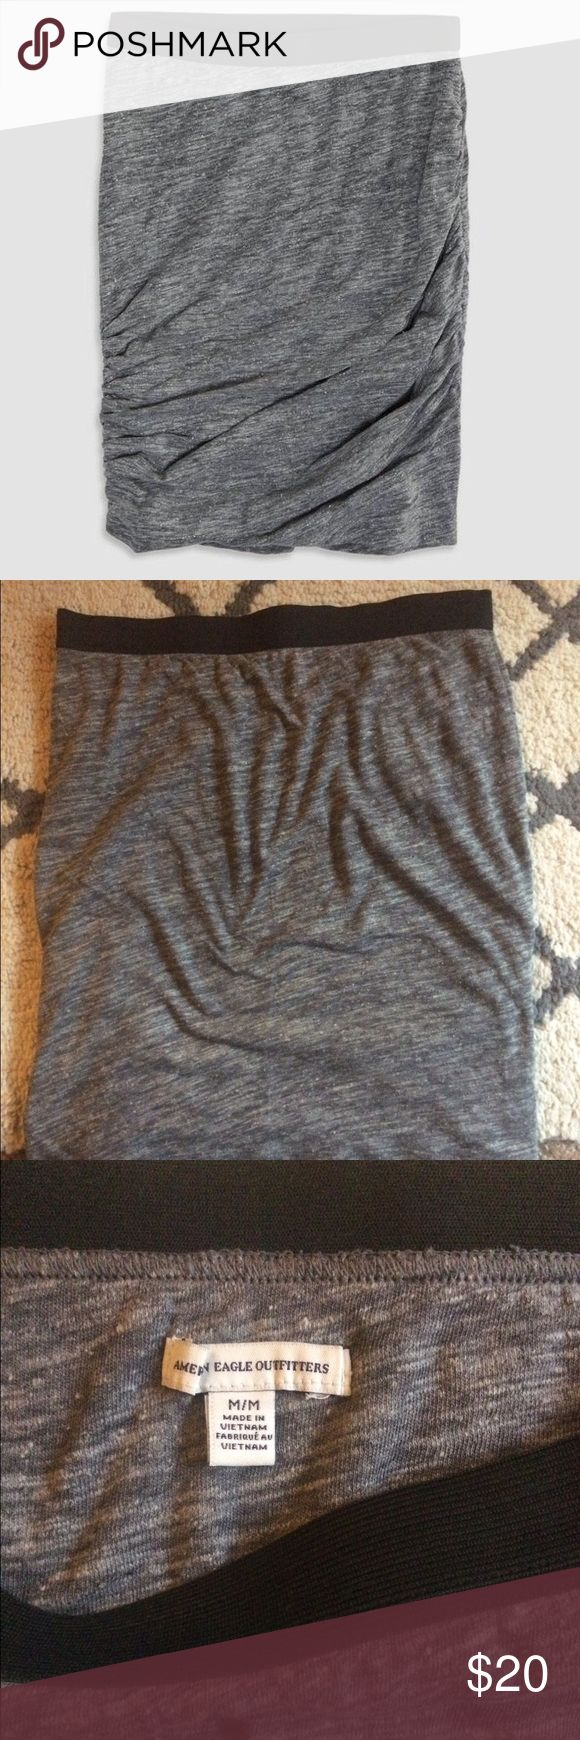 """AE shirred tube skirt Very cute and comfy shirred tube skirt. Similar to the very popular T by Alexander wang skirt. Very stretchy grey fabric with a black elastic waistband. Stretchy but doesn't stretch out after wearing. Fits small, like a fitted S or regular XS. Some pilling throughout (see pic). I'm 5'4"""" and it hits me at the knees. No trades. American Eagle Outfitters Skirts"""